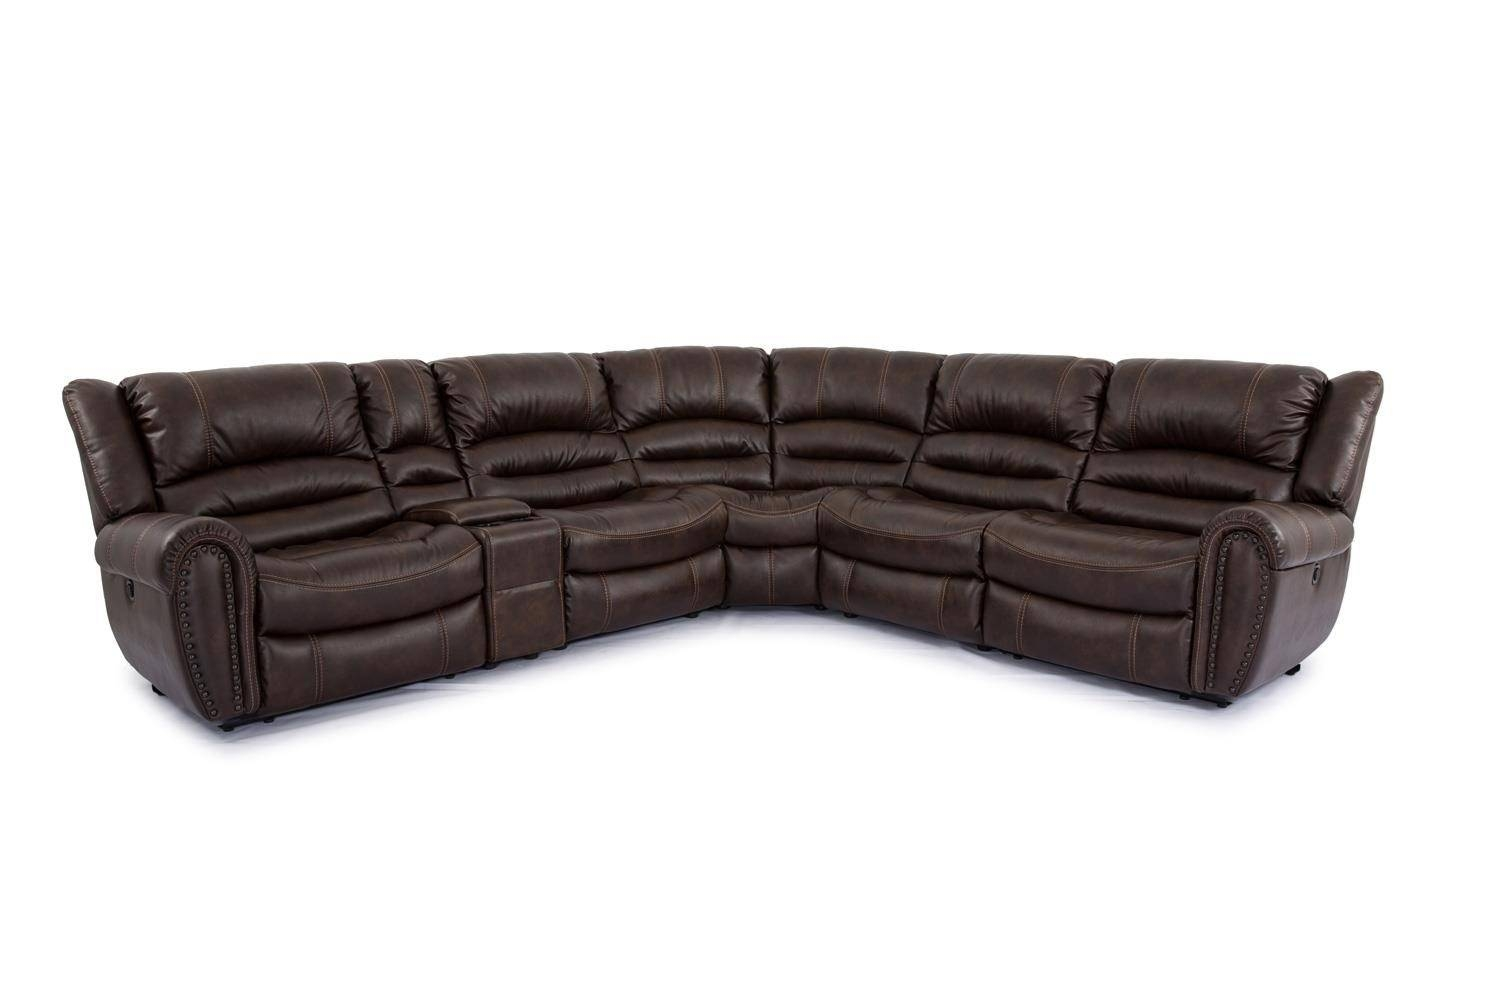 Cheers Sofa Cheers Sofa 6 Piece Sectional   Boulevard Home For Cheers Leather Sofas (Photo 12 of 15)